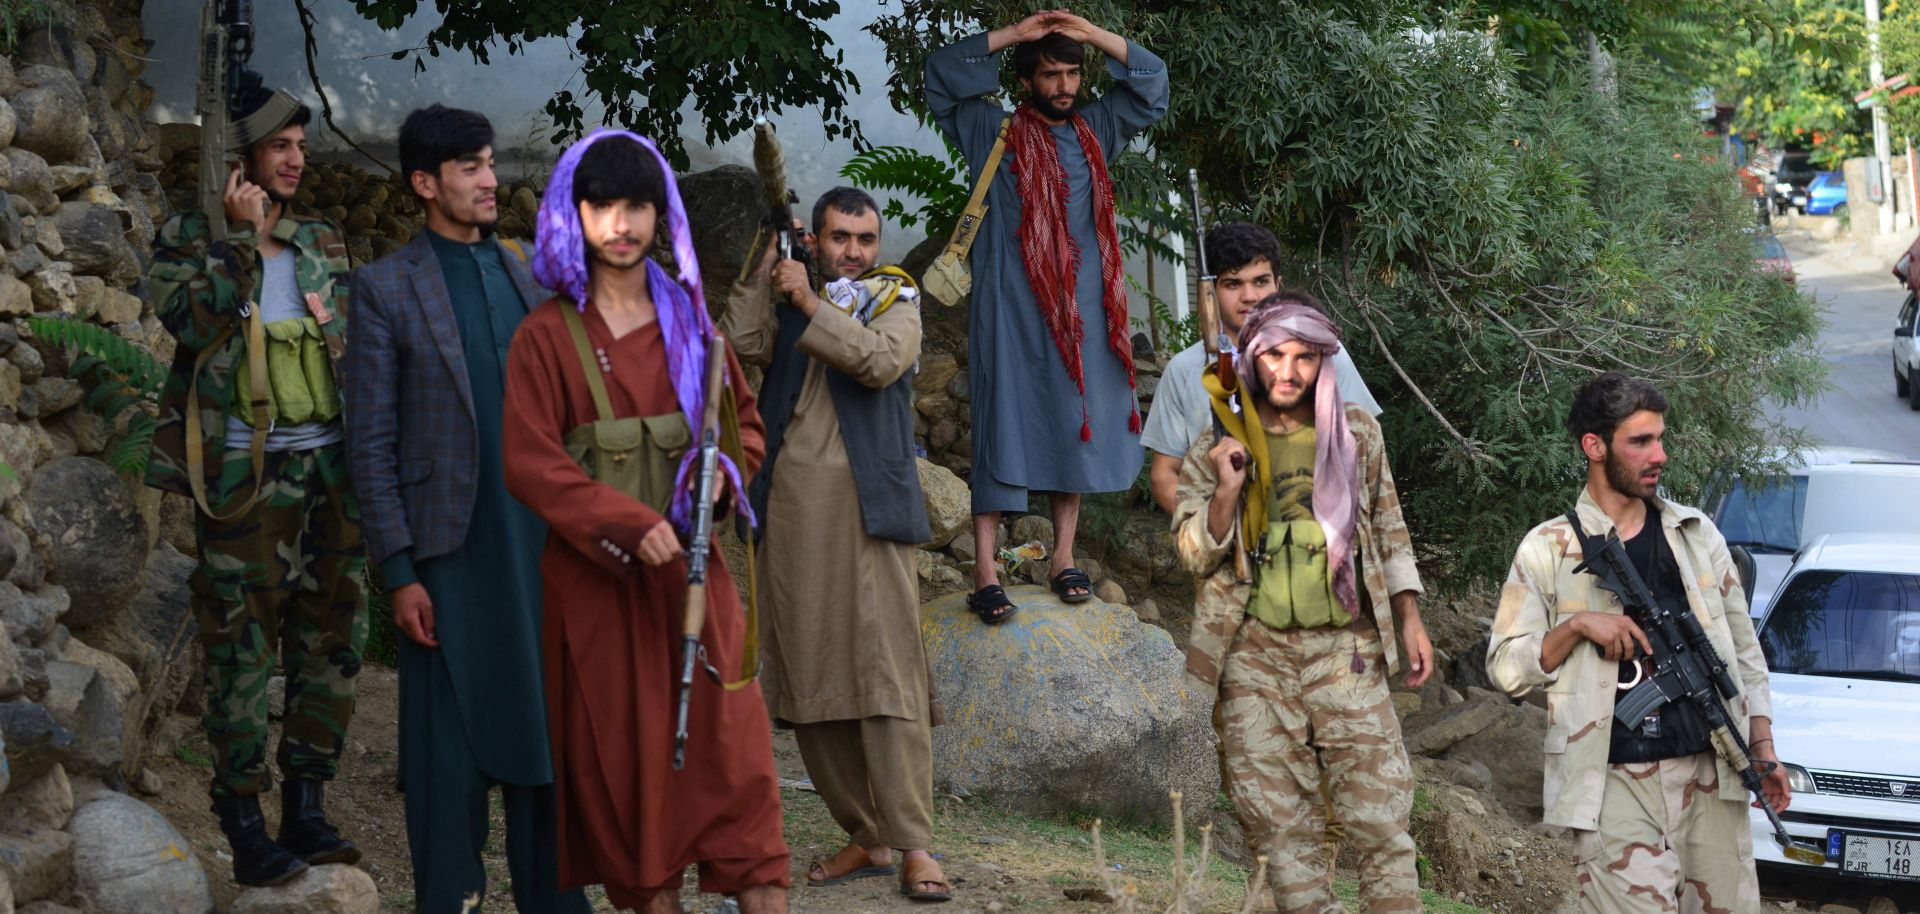 Armed men supporting Afghan security forces against the Taliban stand along a road in Panjshir on Aug. 18, 2021.